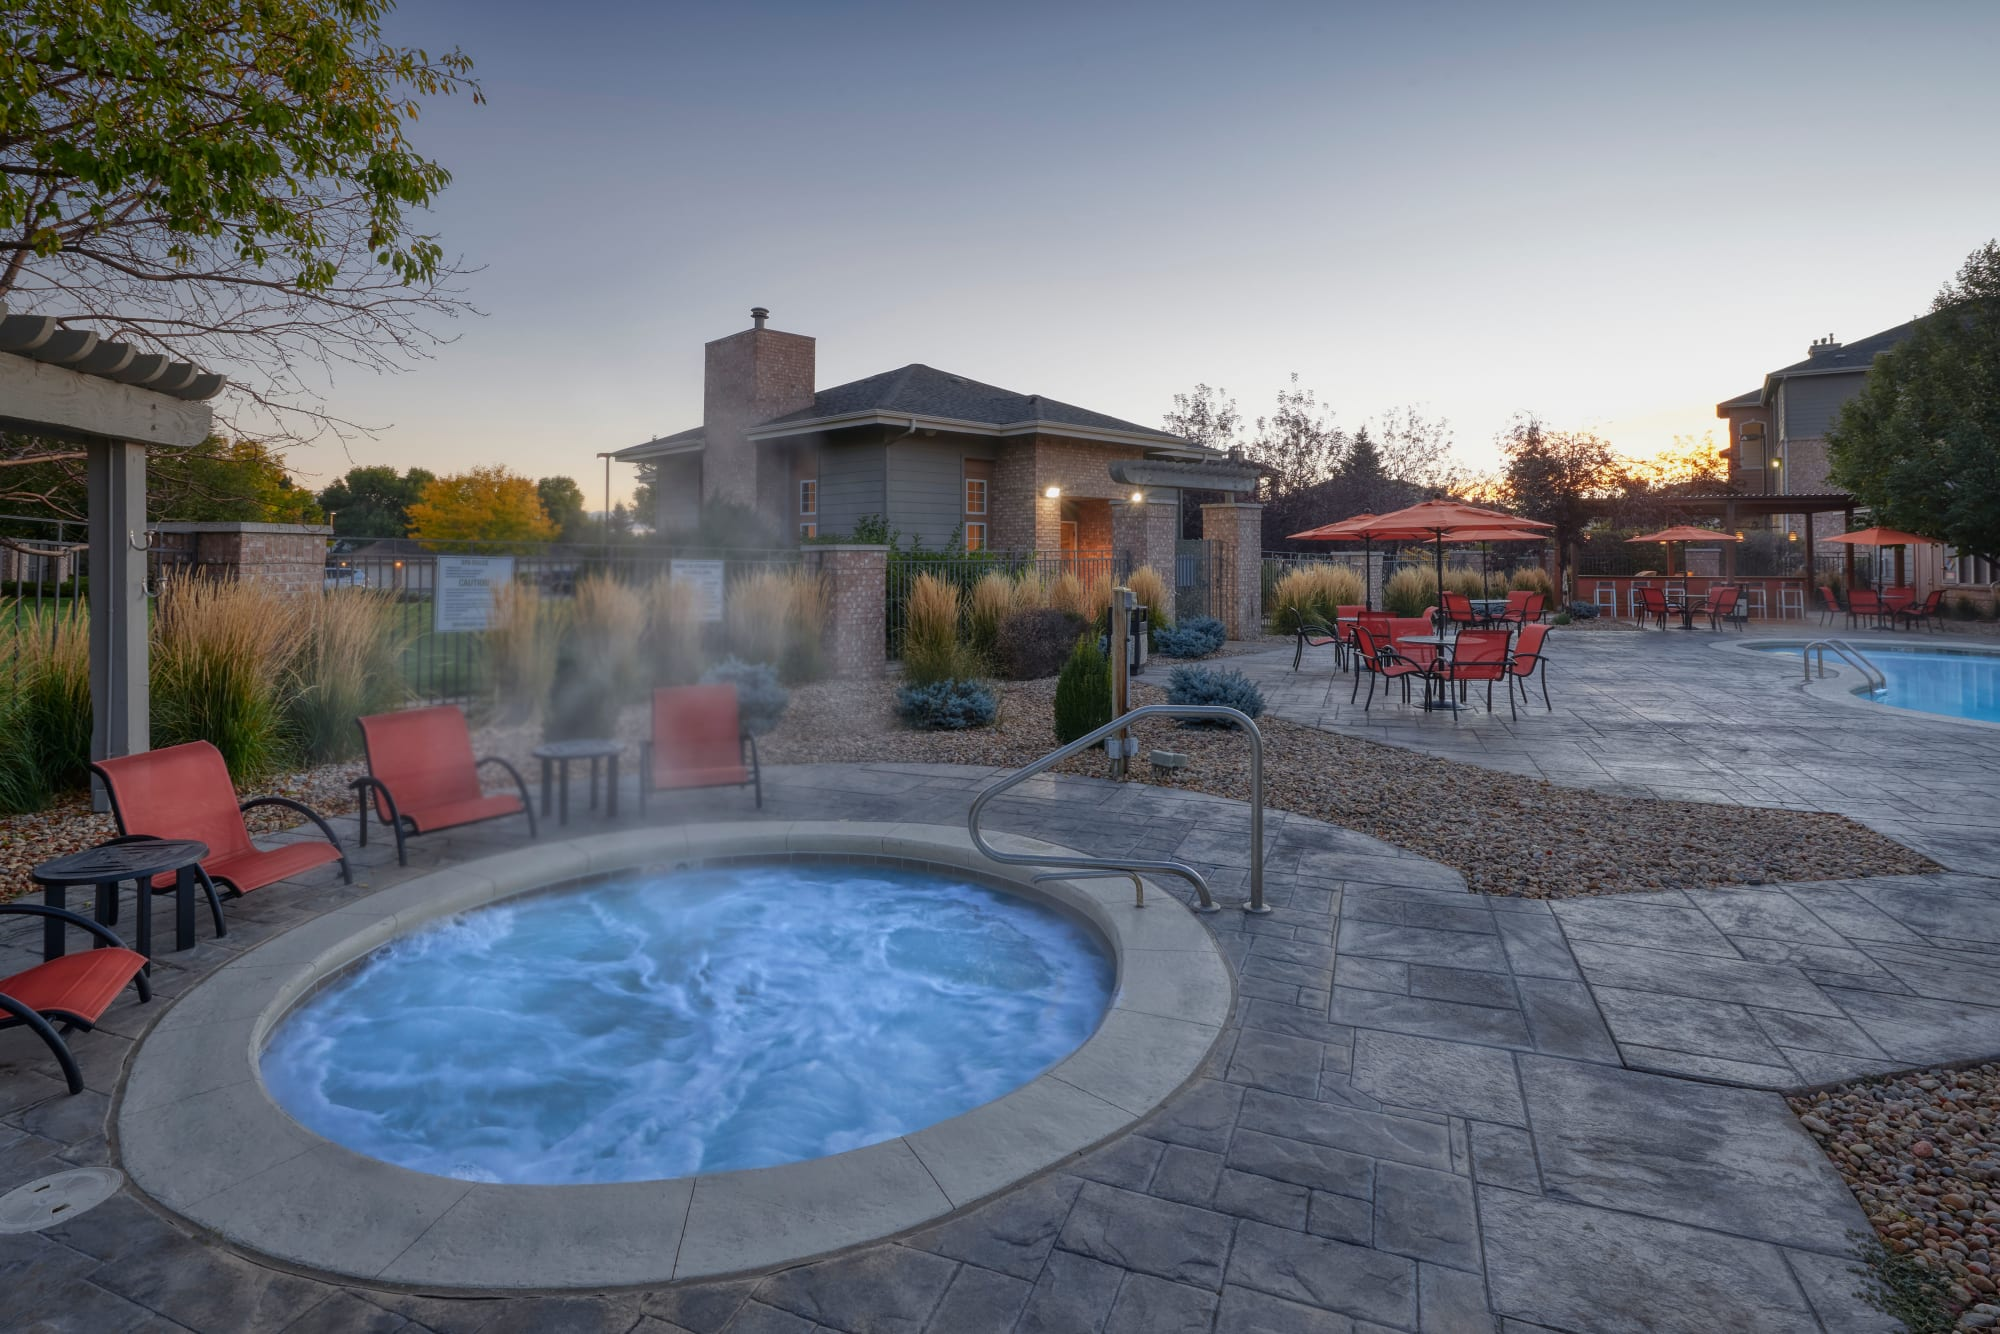 The relaxing hot tub and swimming pool at Hawthorne Hill Apartments in Thornton, Colorado